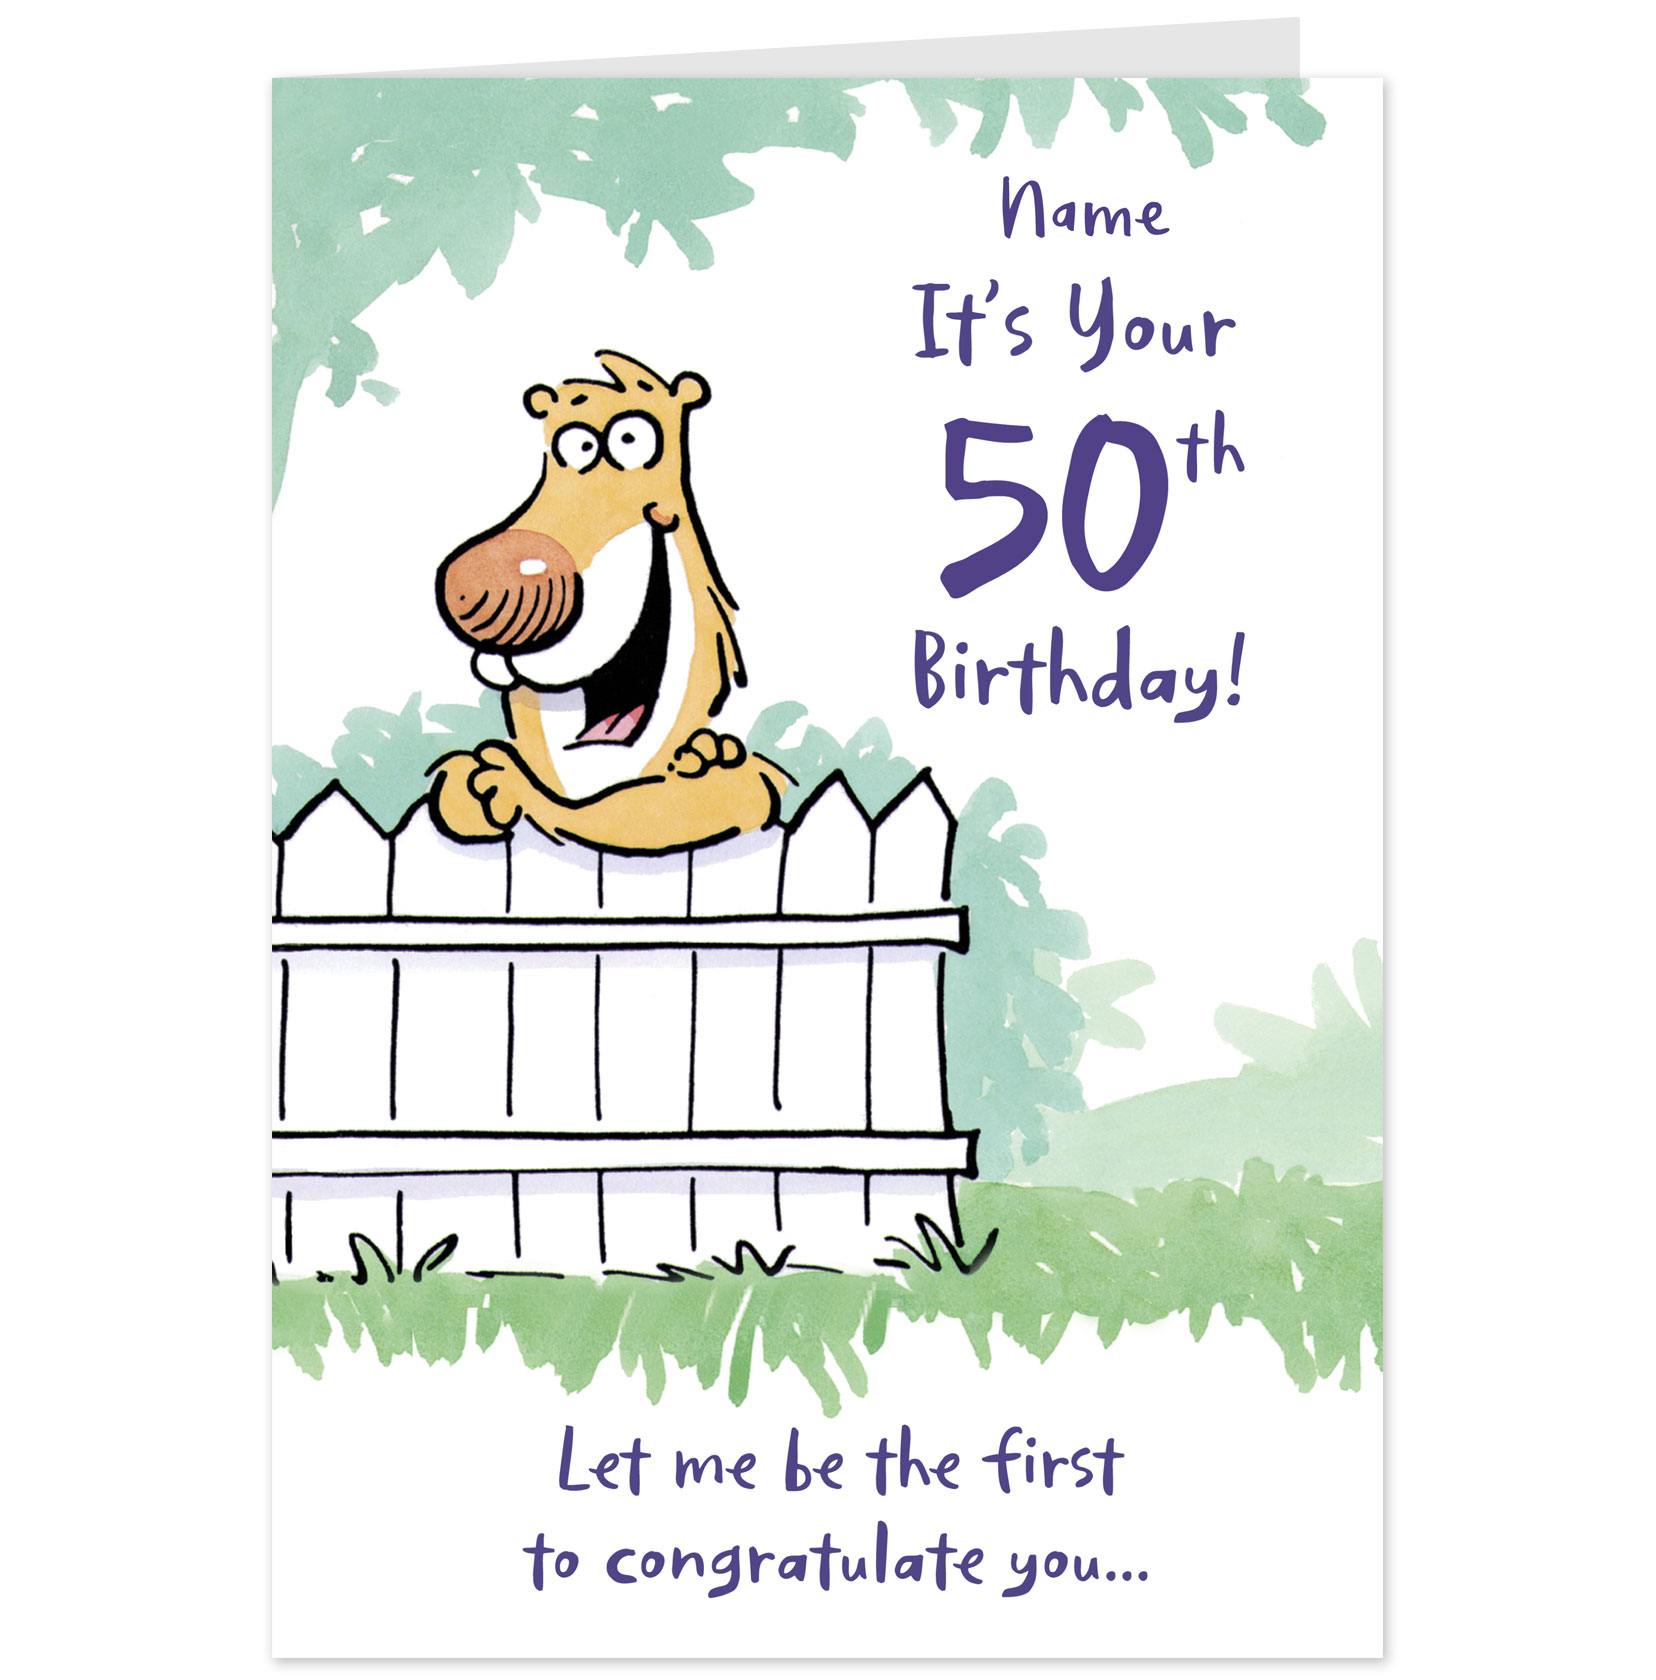 50th birthday greeting card messages ; 10689420